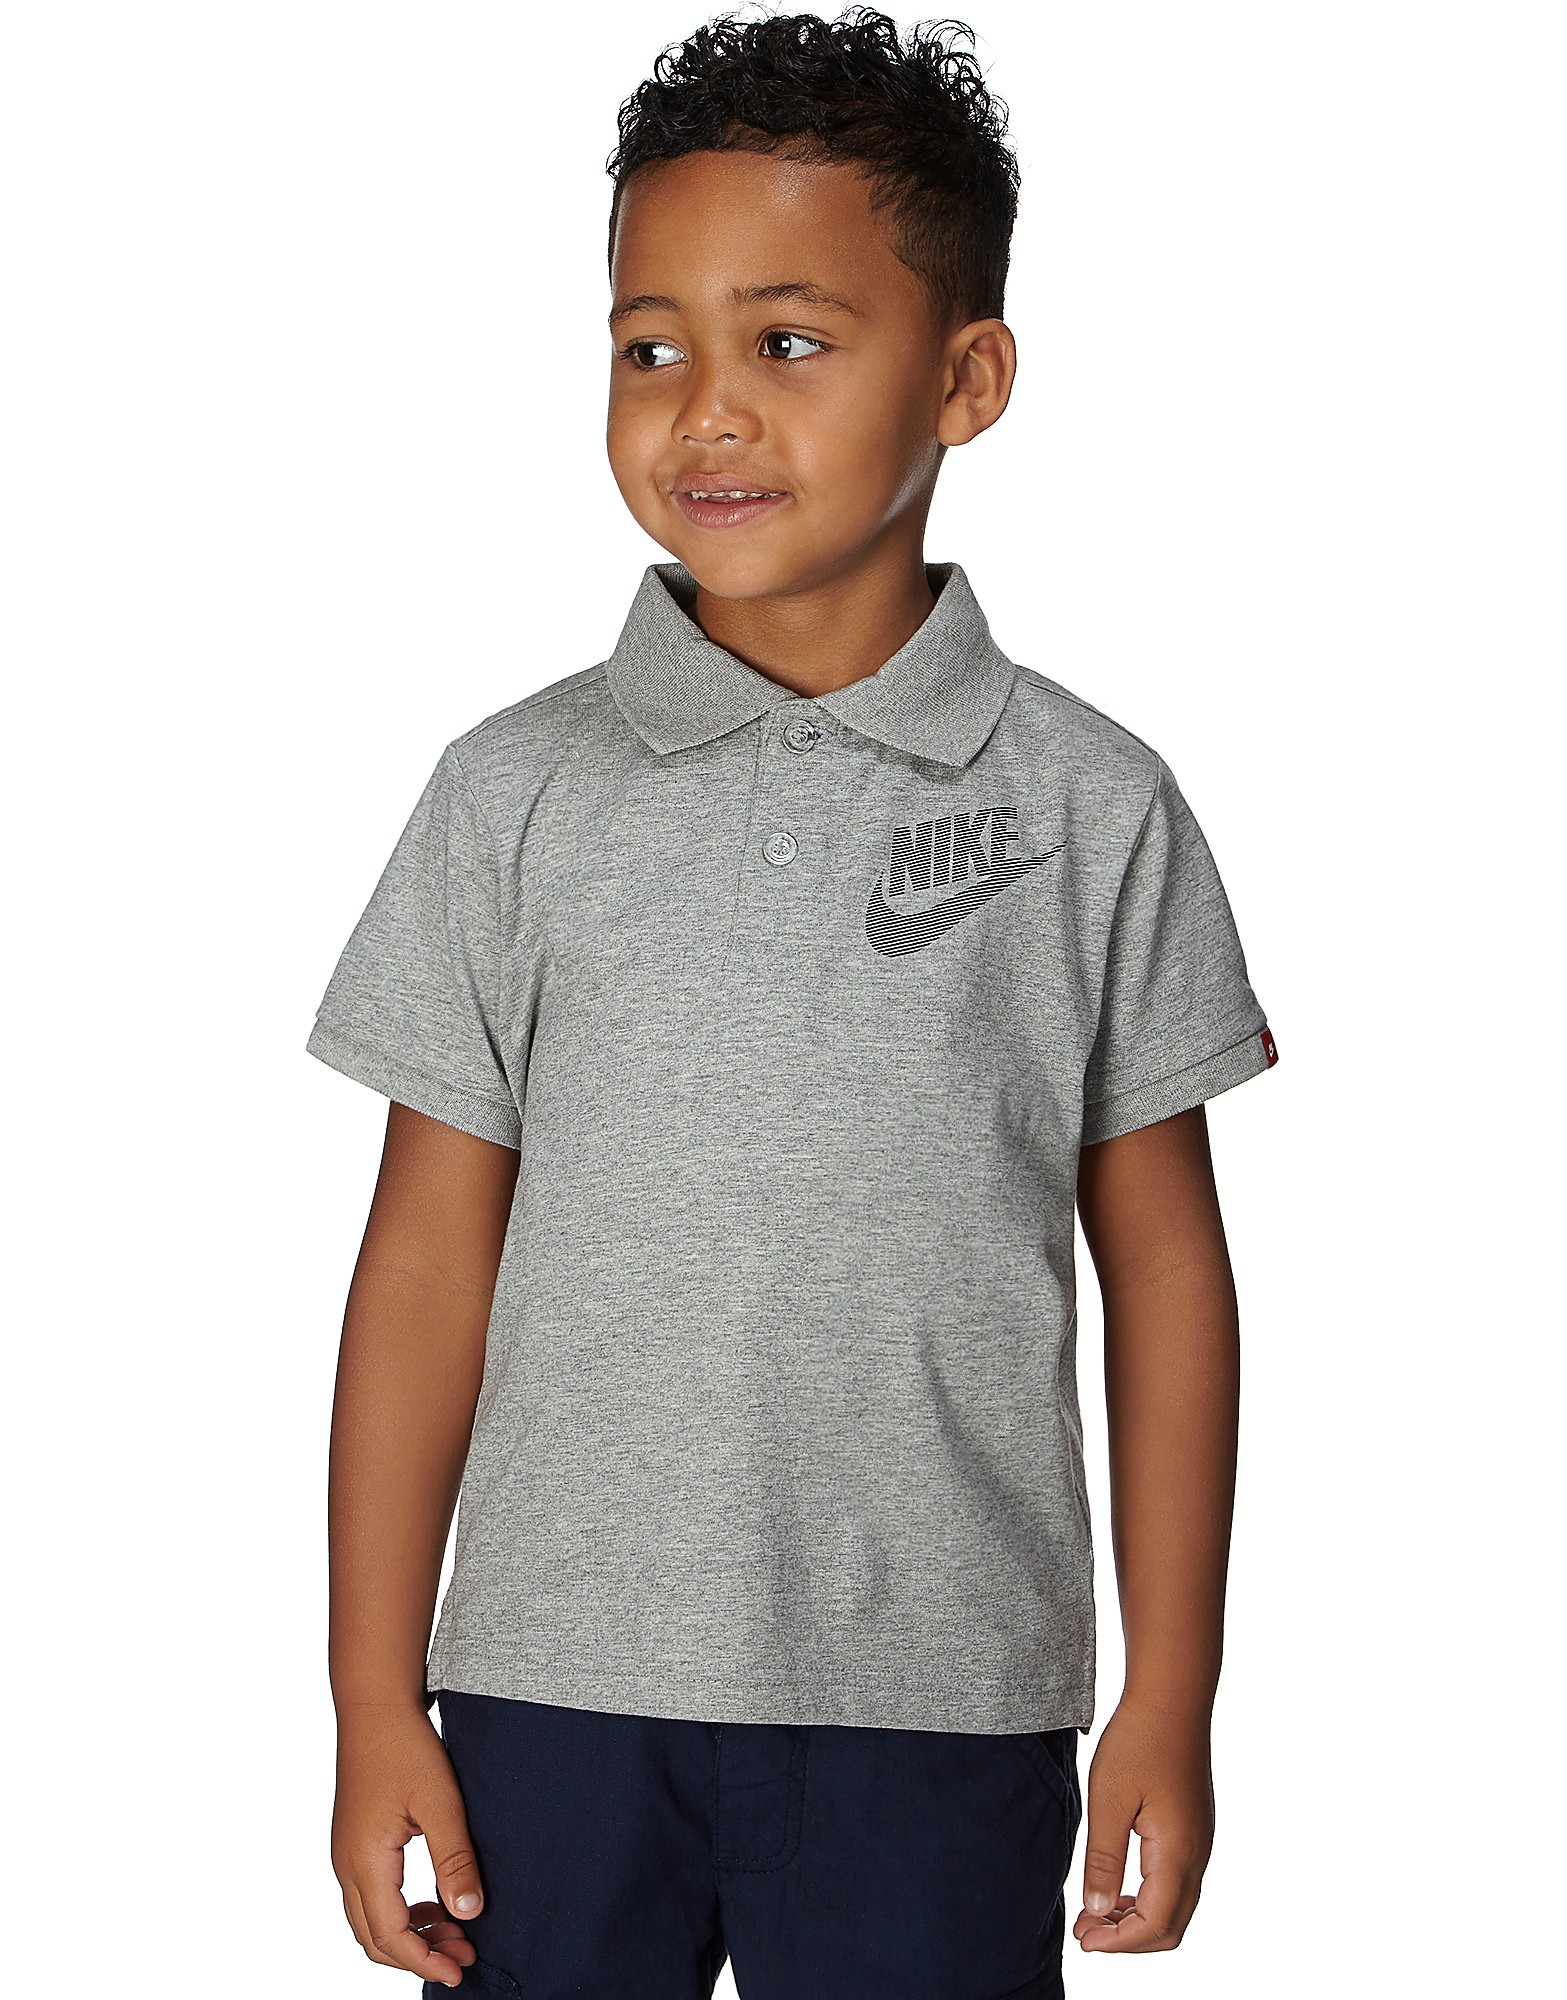 Nike polo shirt compare prices at foundem for Nike t shirt price